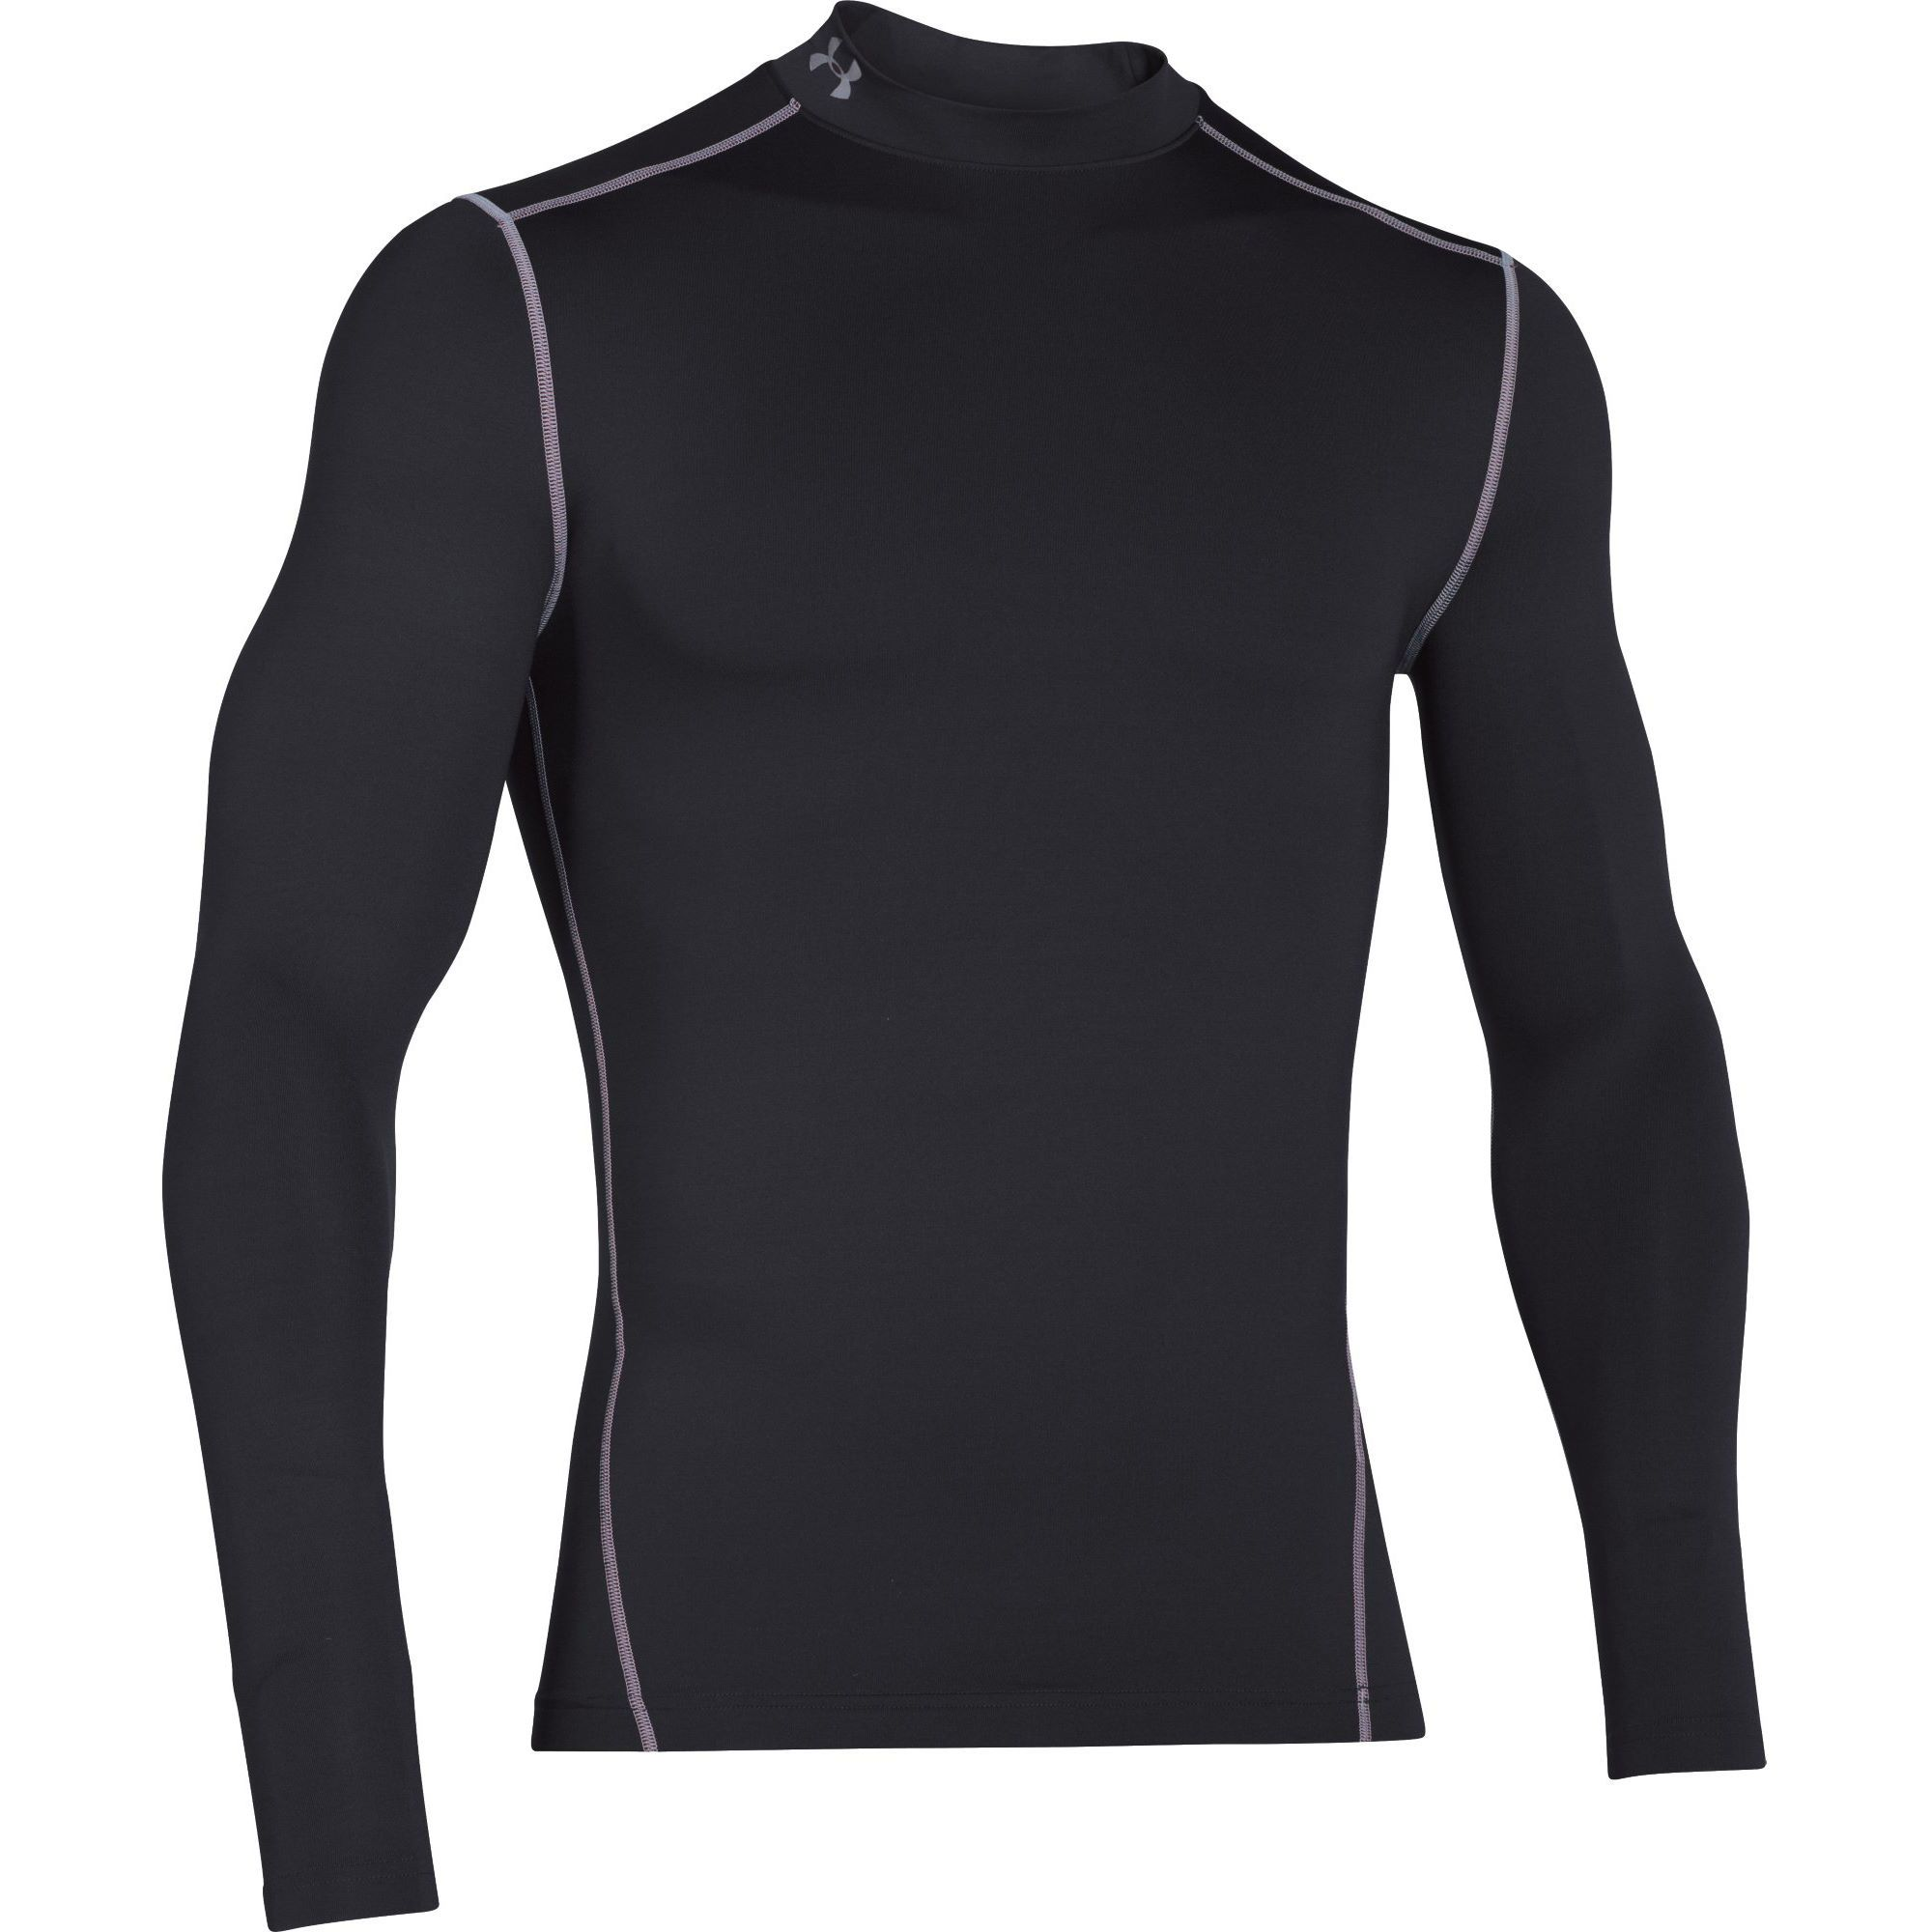 46a81cb92b762d Under Armour Men s ColdGear Armour Compression Mock Baselayer Shirt (Purple  Steel